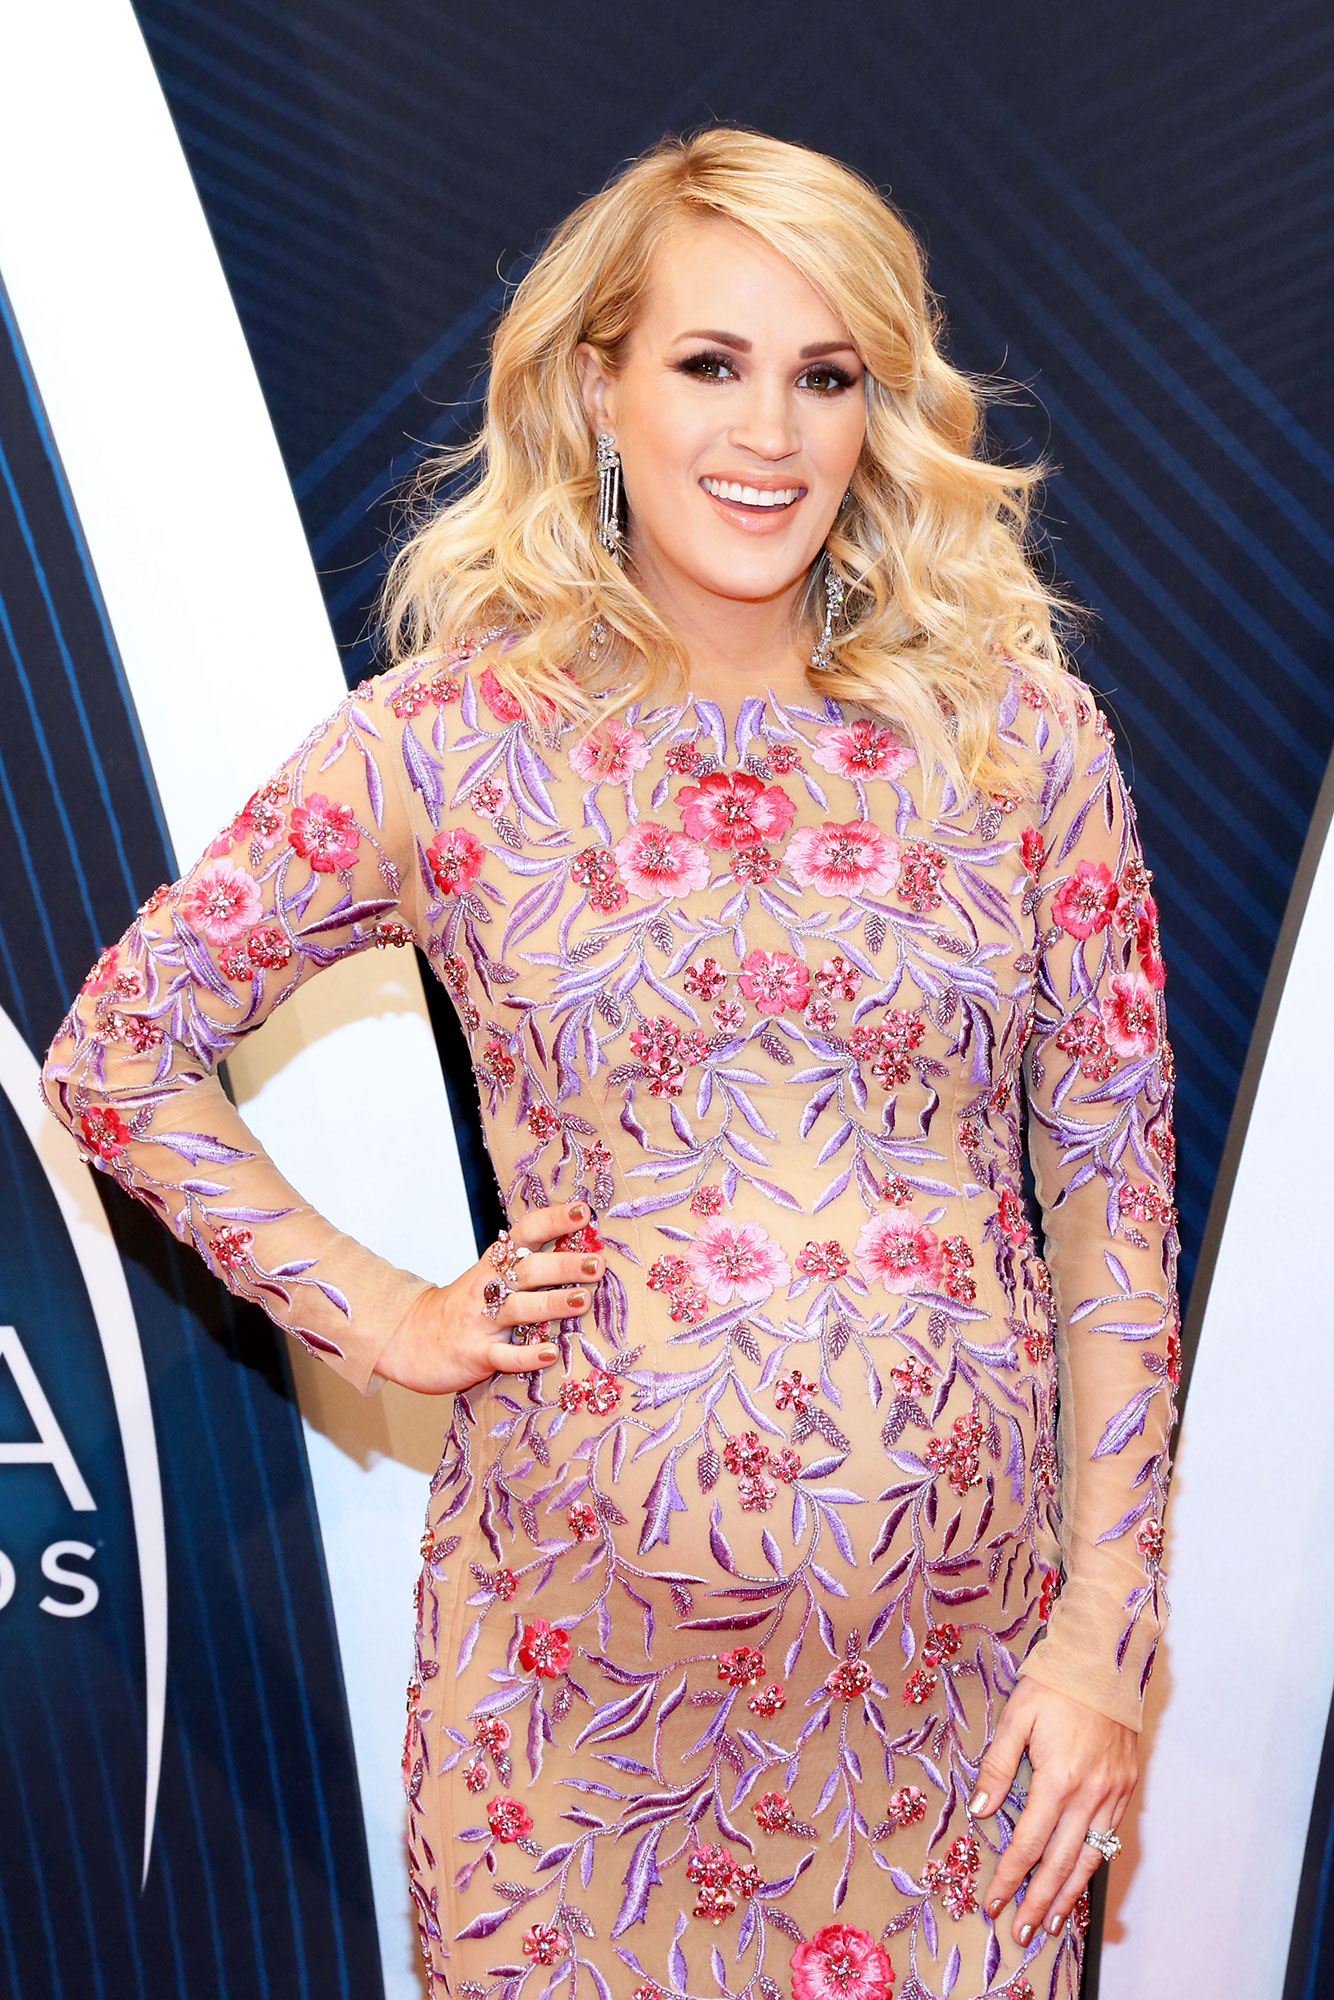 Pregnant Carrie Underwood's Naked Baby Bump is Stunning - Carrie Underwood attends the 52nd annual CMA Awards at the Bridgestone Arena on November 14, 2018 in Nashville, Tennessee.